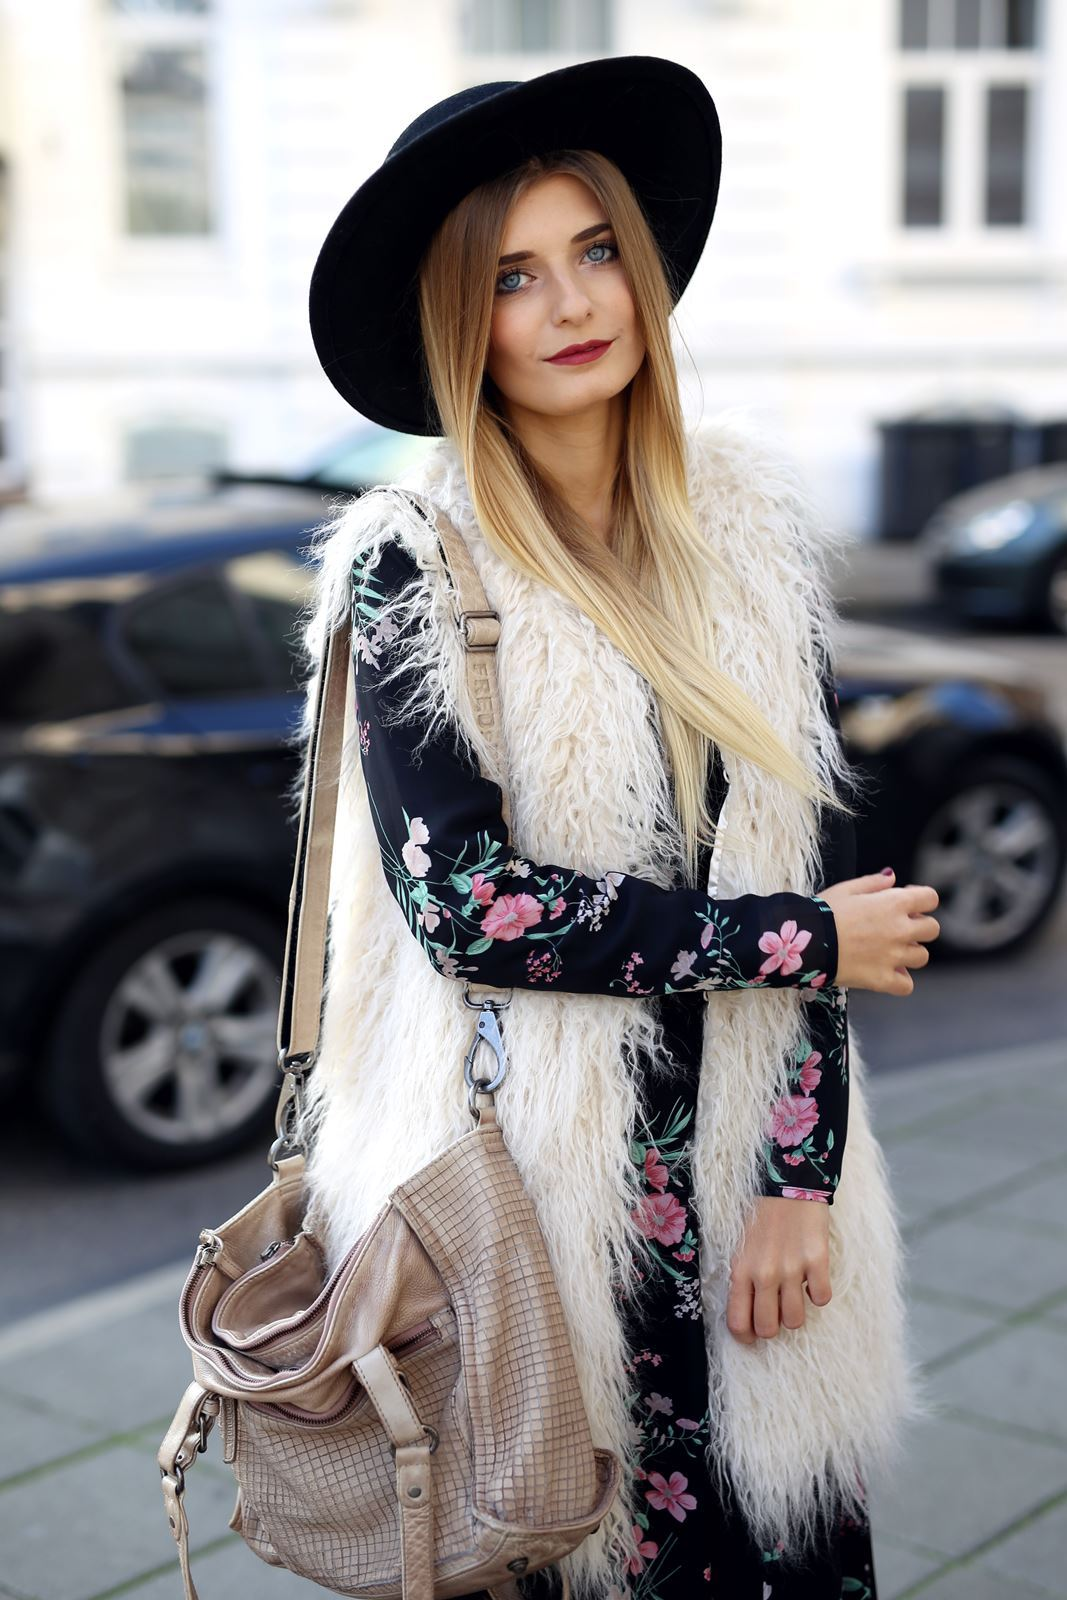 modeblog-fashion-blog-outfit-herbst-fake-fur-maxi-kleid